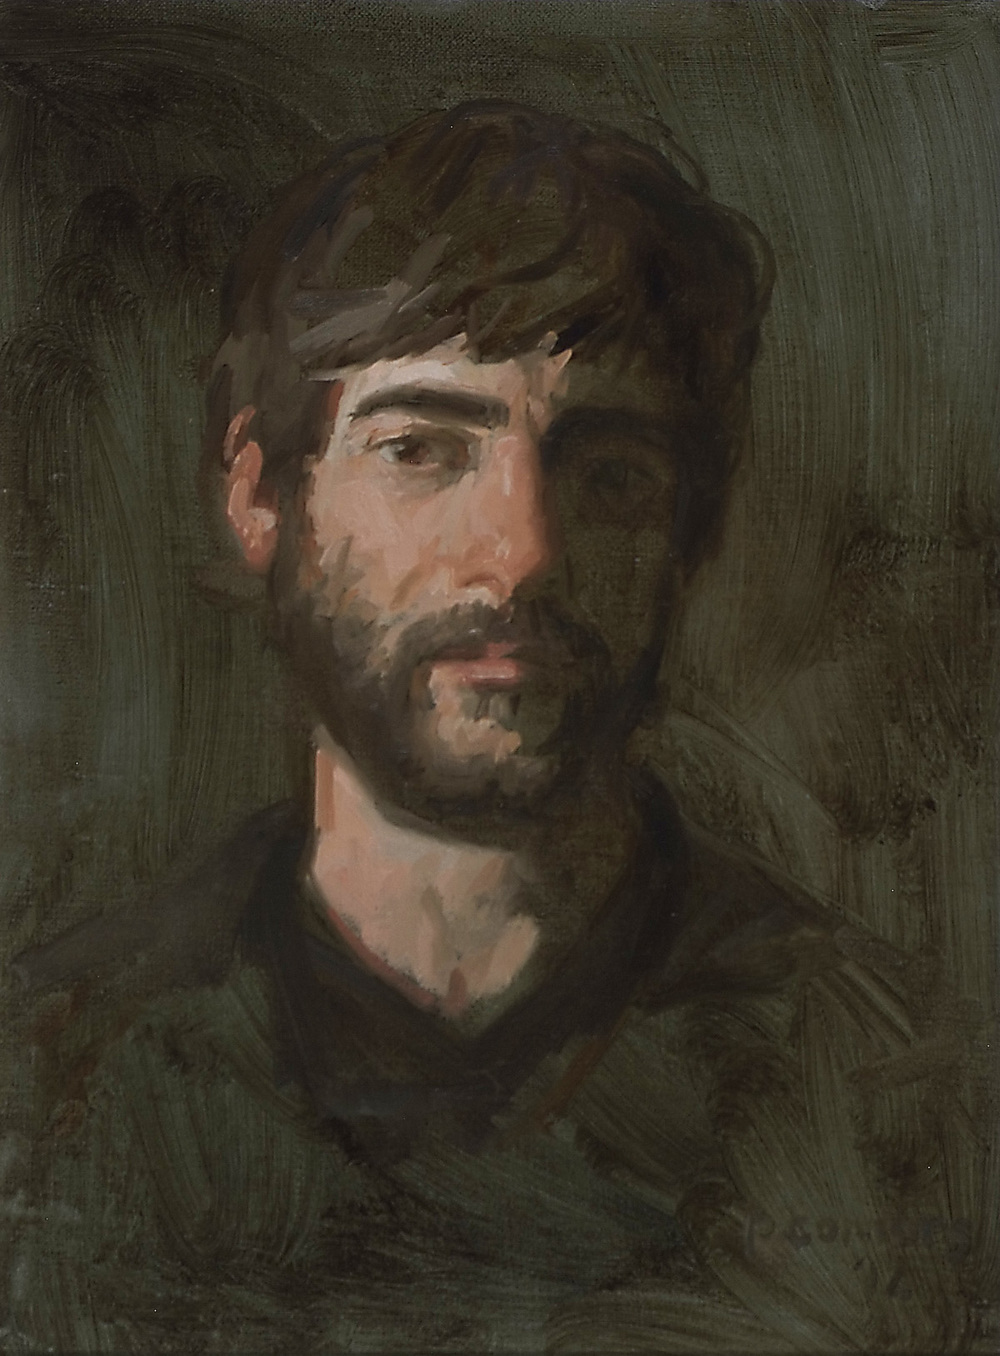 Portrait of F. S., 15 x 13 inches, oil on linen